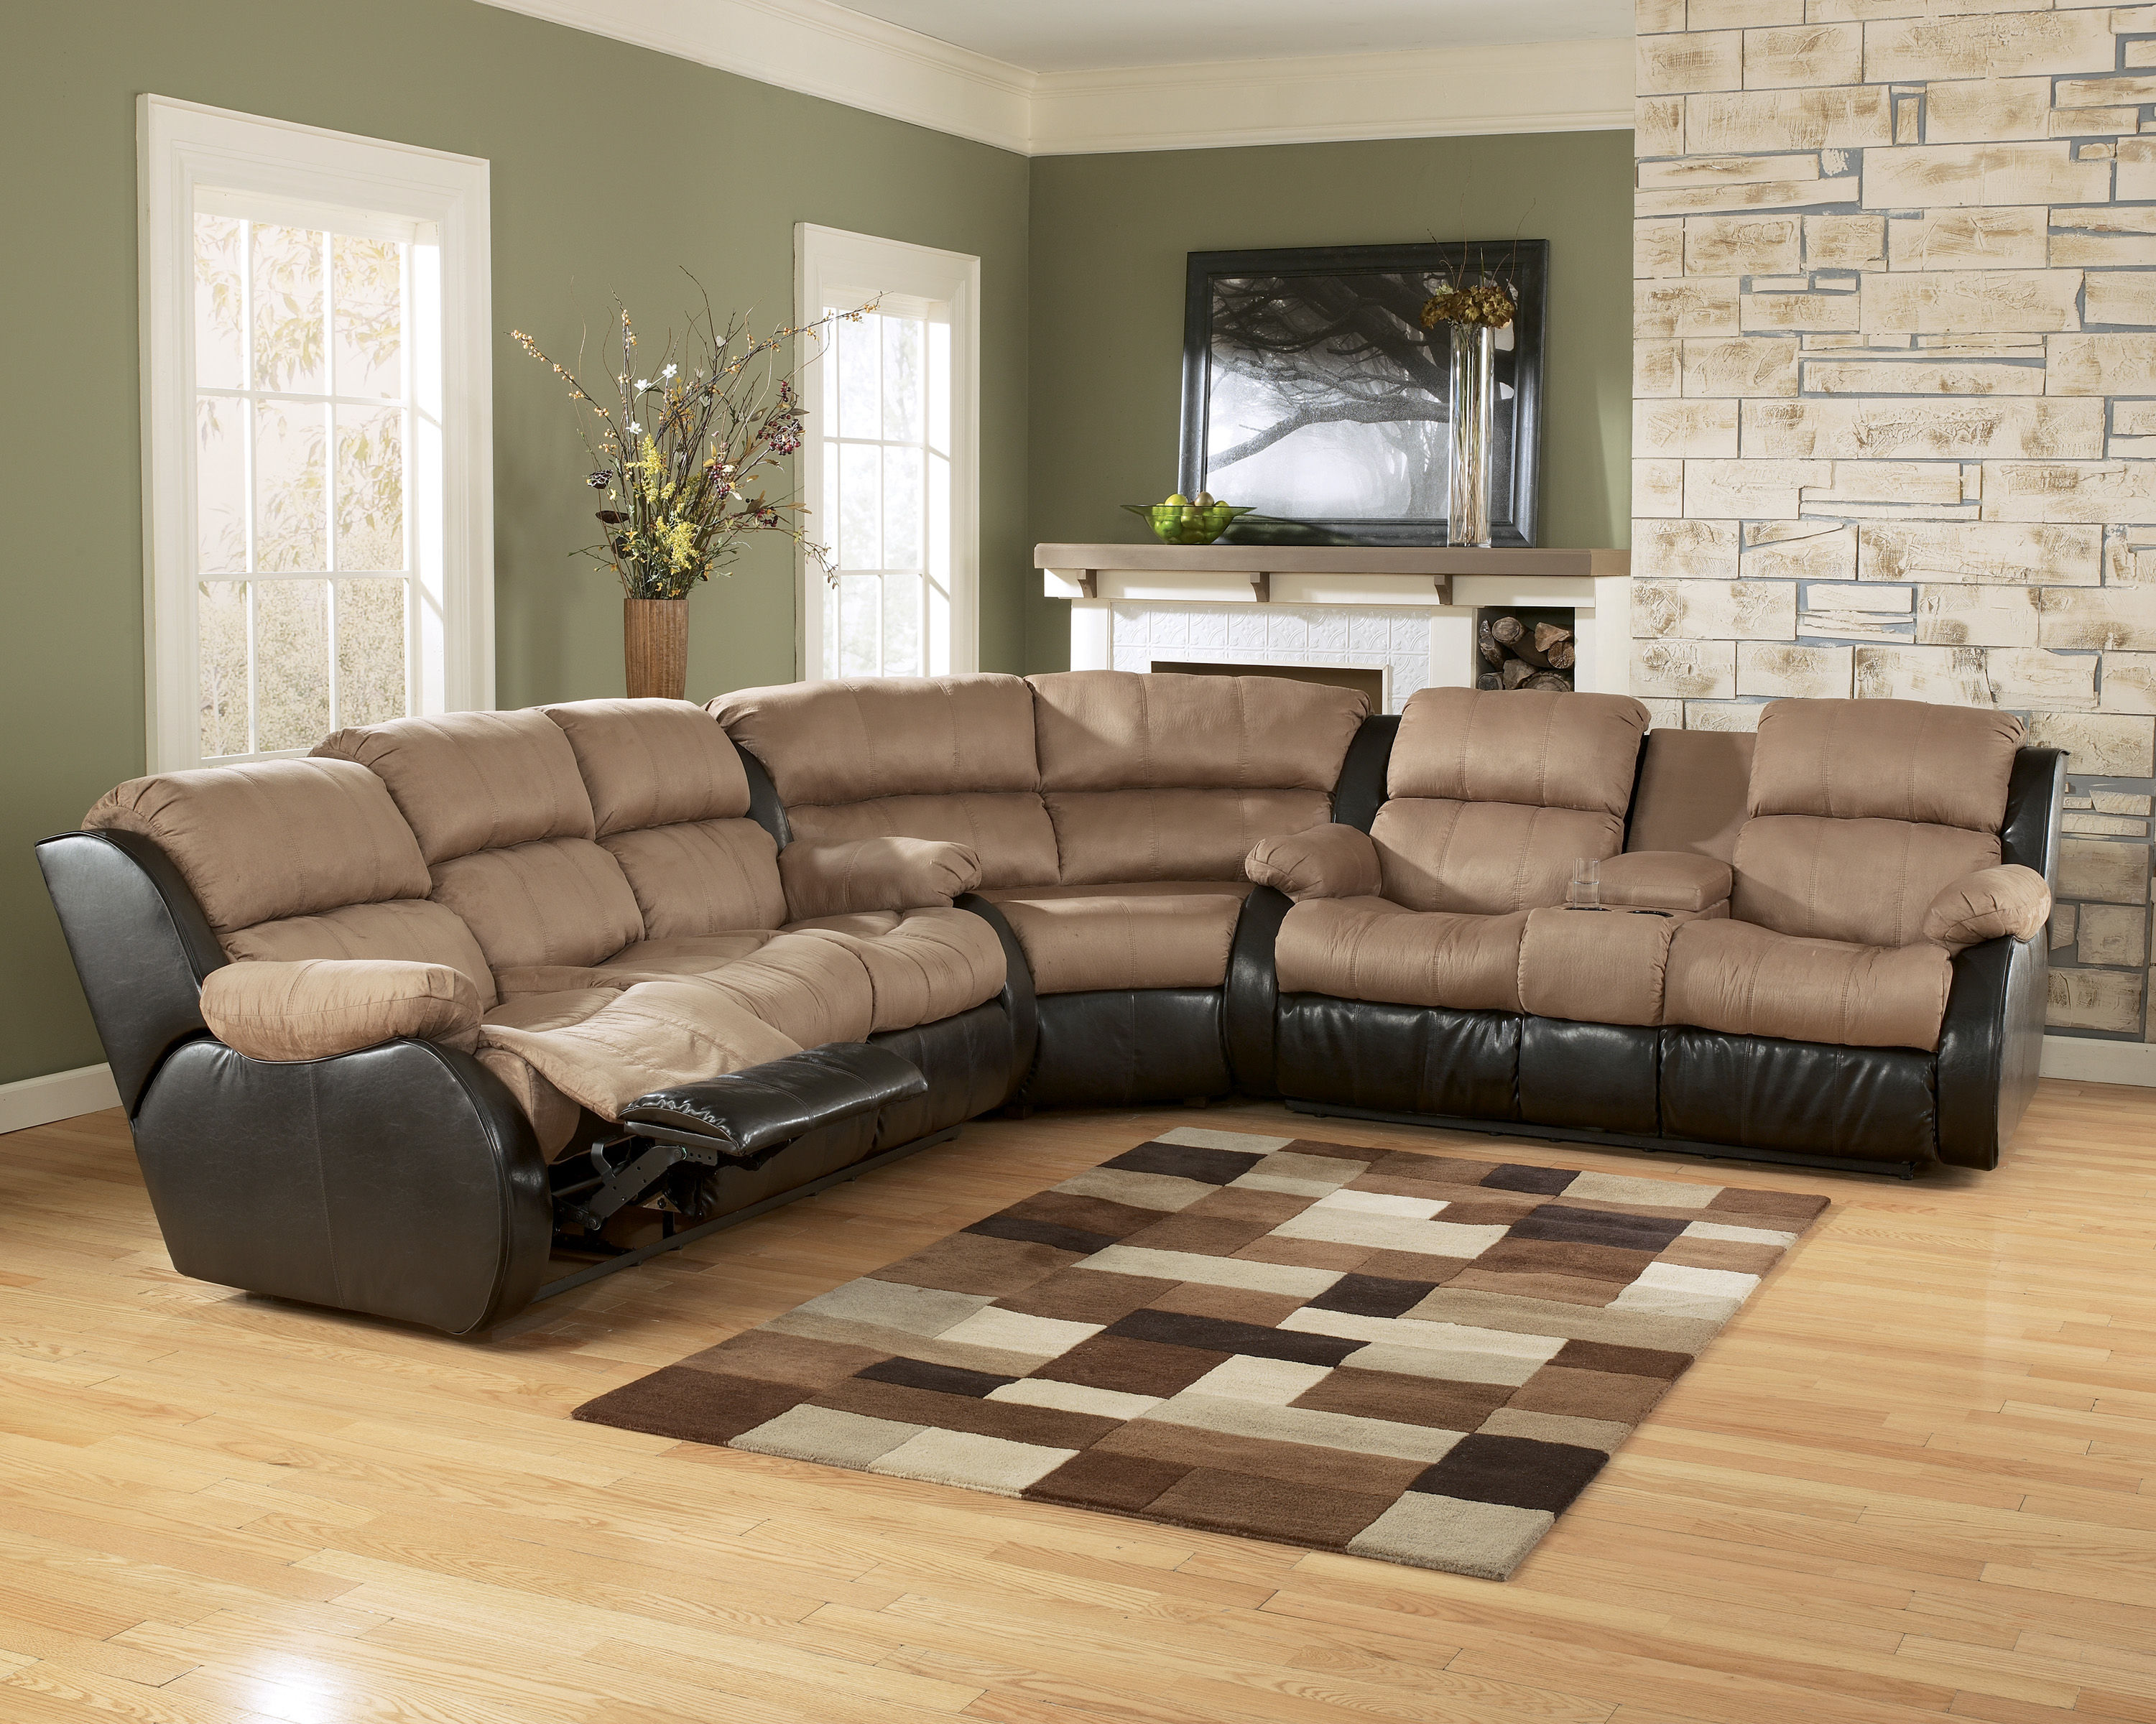 discount of sofas sofa ideas small couch corduroy piece sears motorized sectionals gray prices at full brown center furniture size singular ashley photo sectional